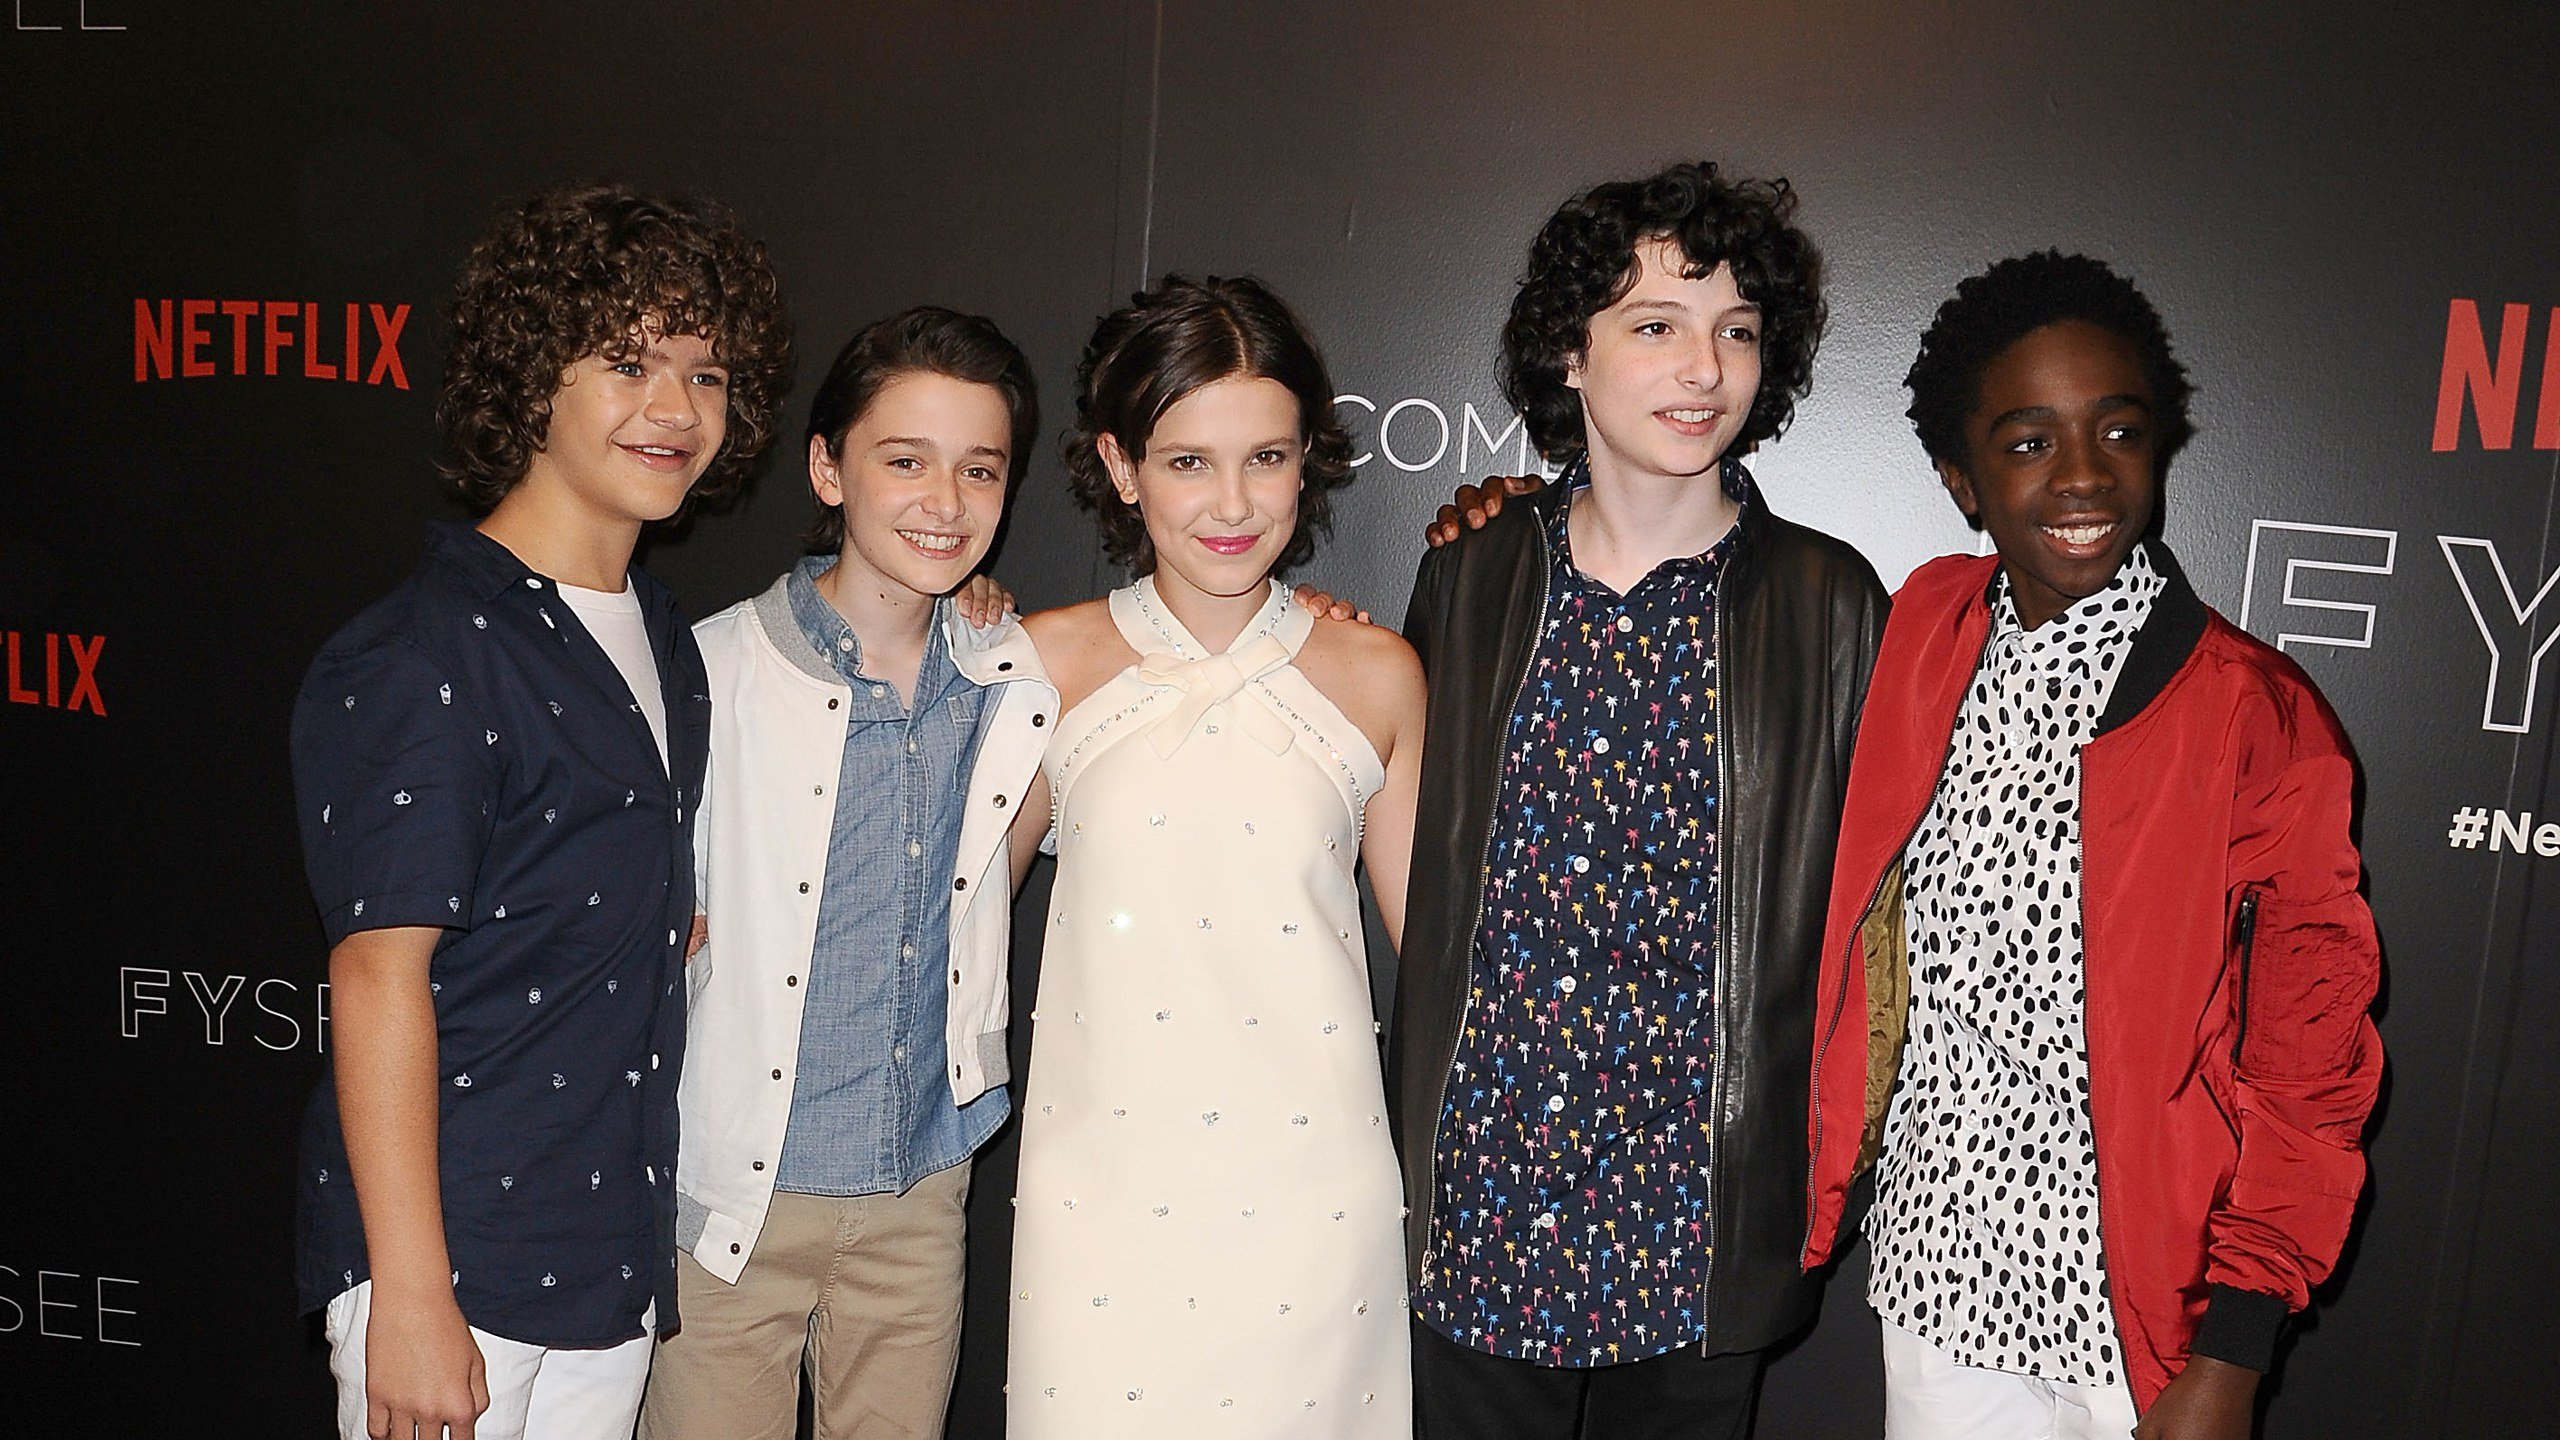 Stranger Things Season 4 Cast and Total Episodes